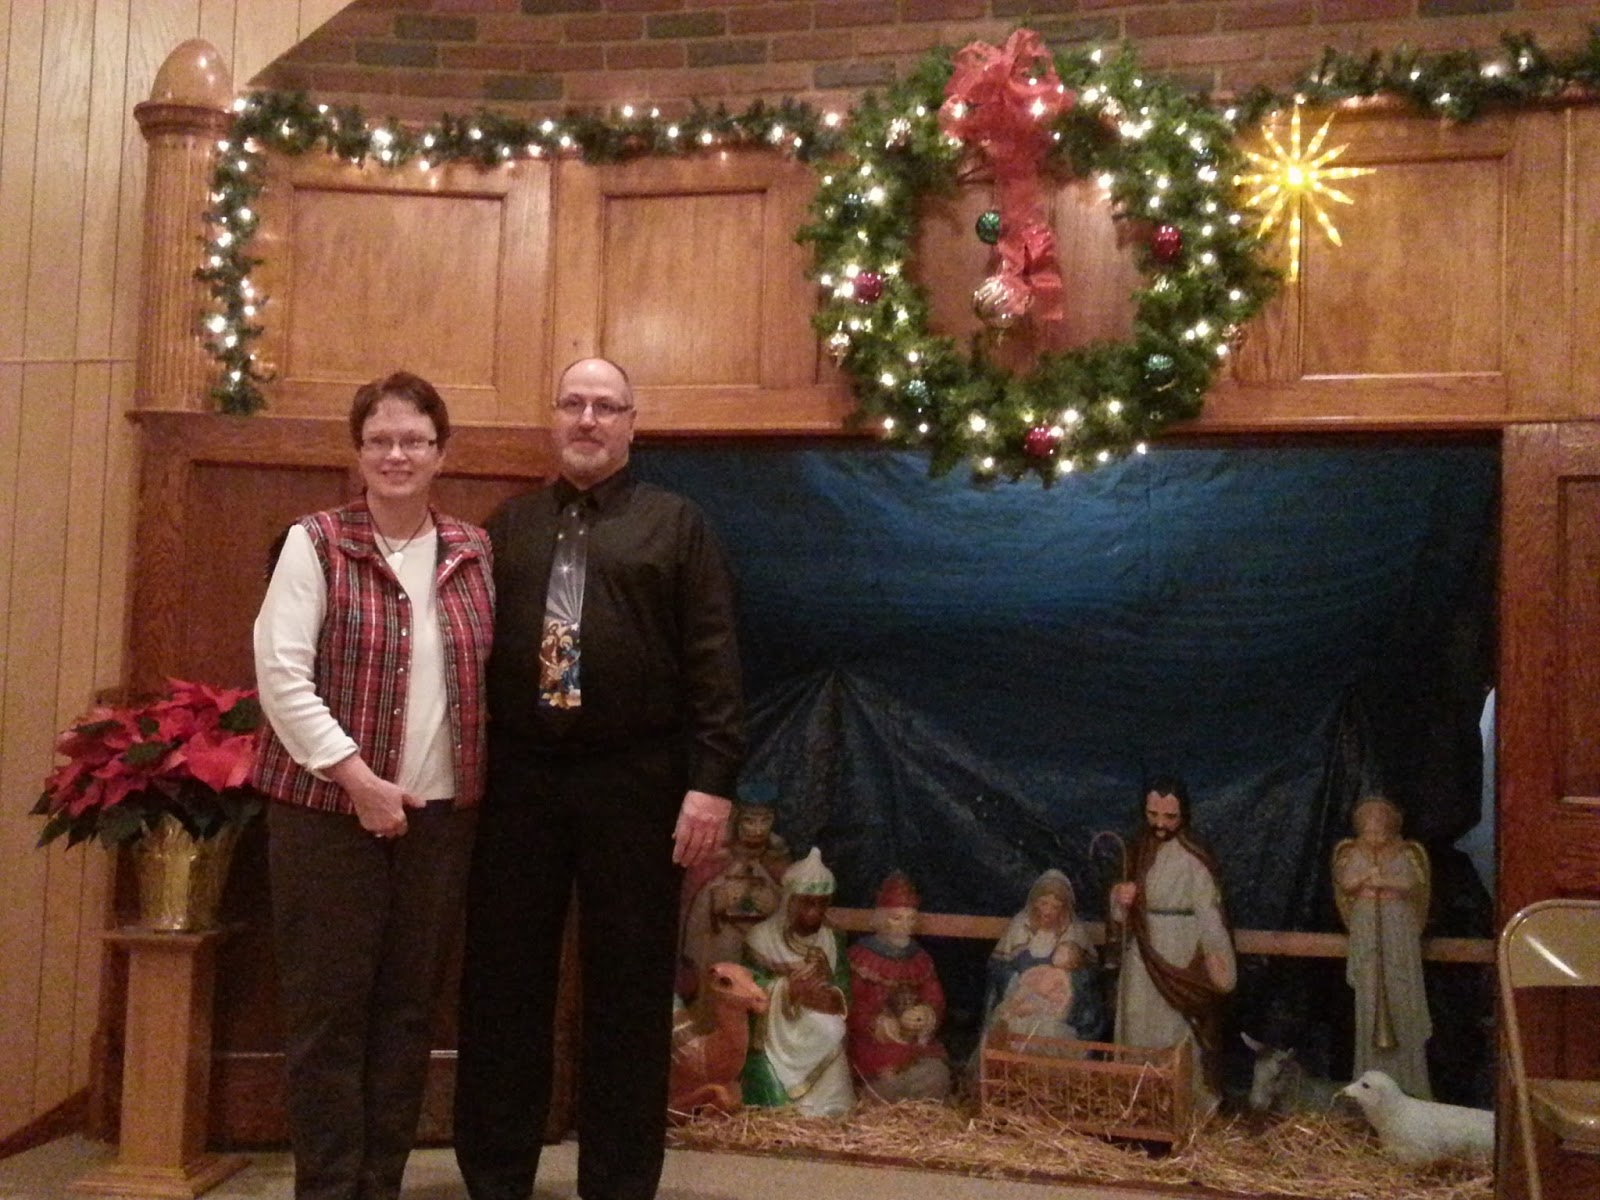 The cerro gordo church of the brethren christmas greetings pastor tim and betty sue posed beside the nativity set that was given to the church by paul and maxine garver several years ago kristyandbryce Image collections